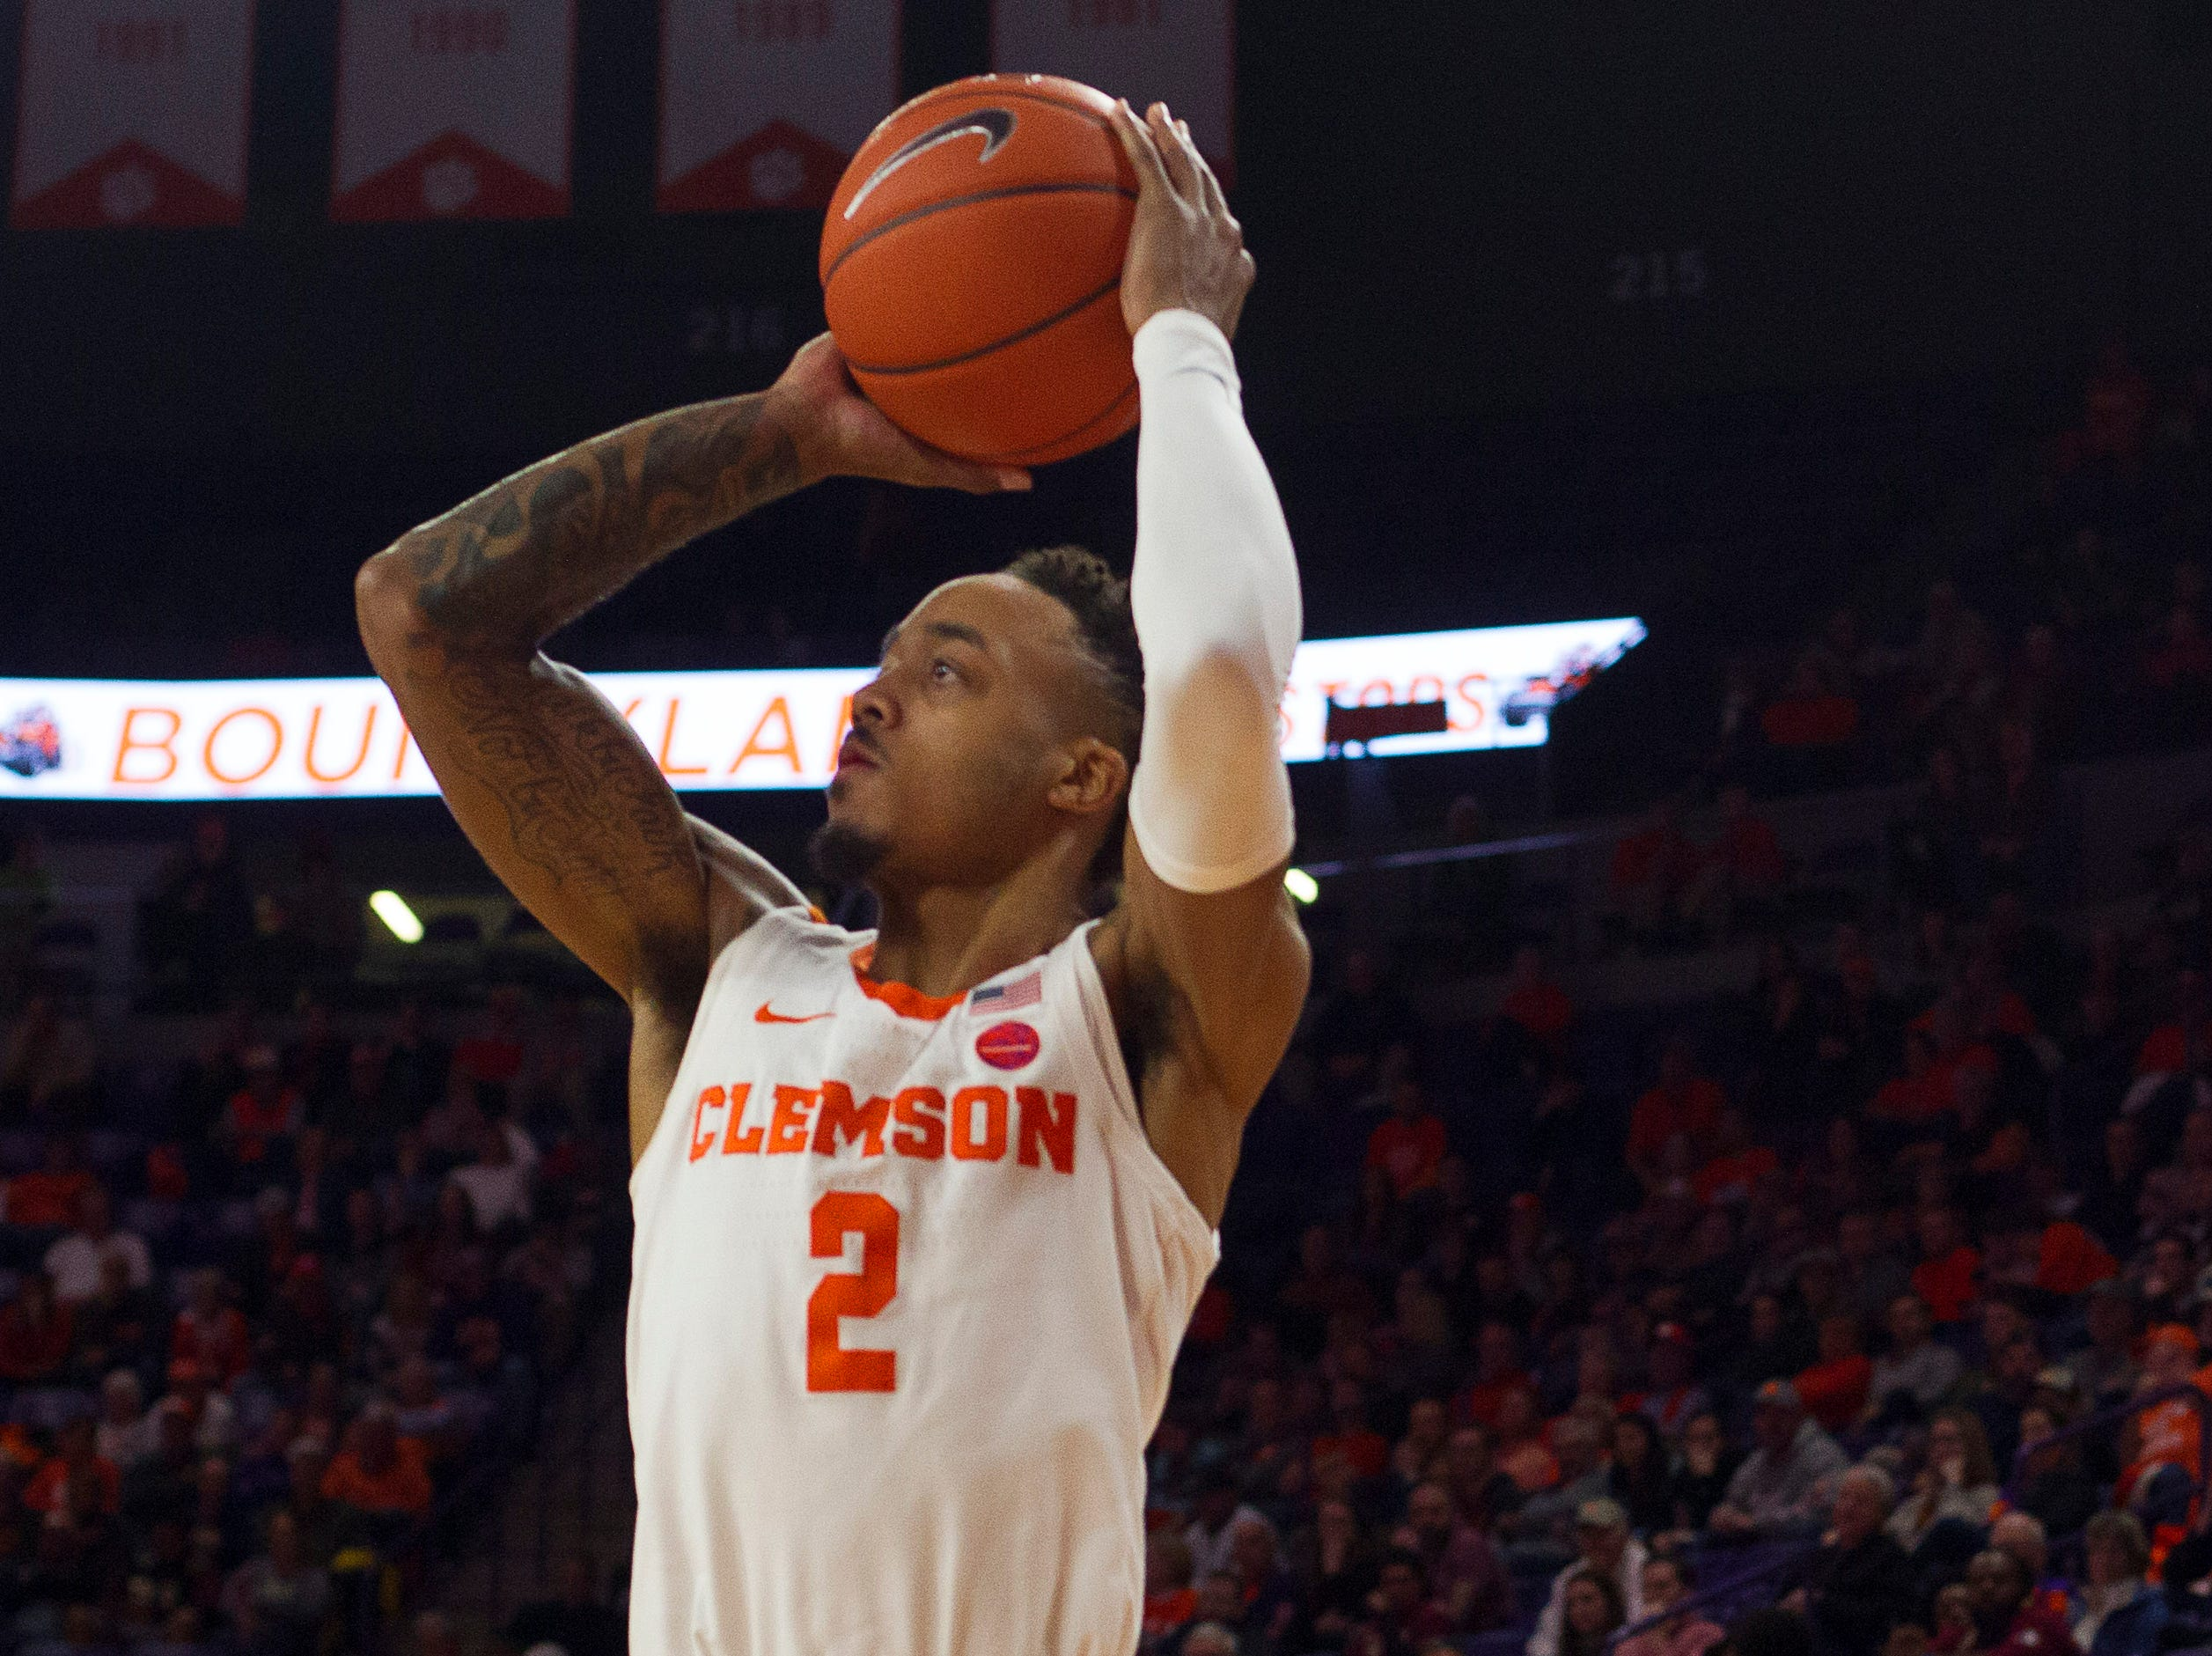 Feb 19, 2019; Clemson, SC, USA; Clemson Tigers guard Marcquise Reed (2) shoots the ball during the second half against the Florida State Seminoles at Littlejohn Coliseum. Seminoles won 77-64. Mandatory Credit: Joshua S. Kelly-USA TODAY Sports